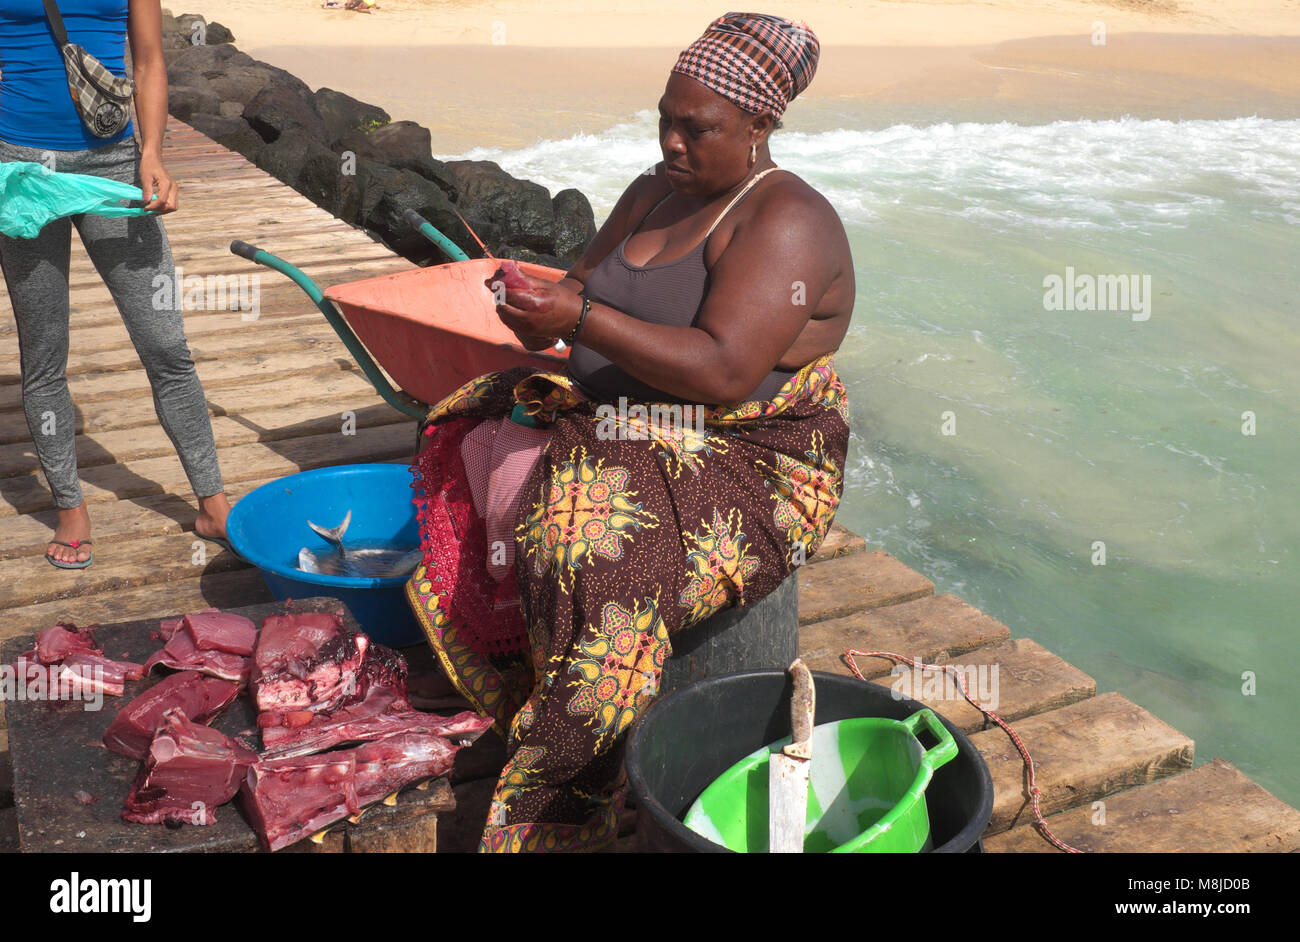 Female fish seller on main pier at Santa Maria, Sal Island, Cape Verde. Cape Verde comprises several islands in - Stock Image